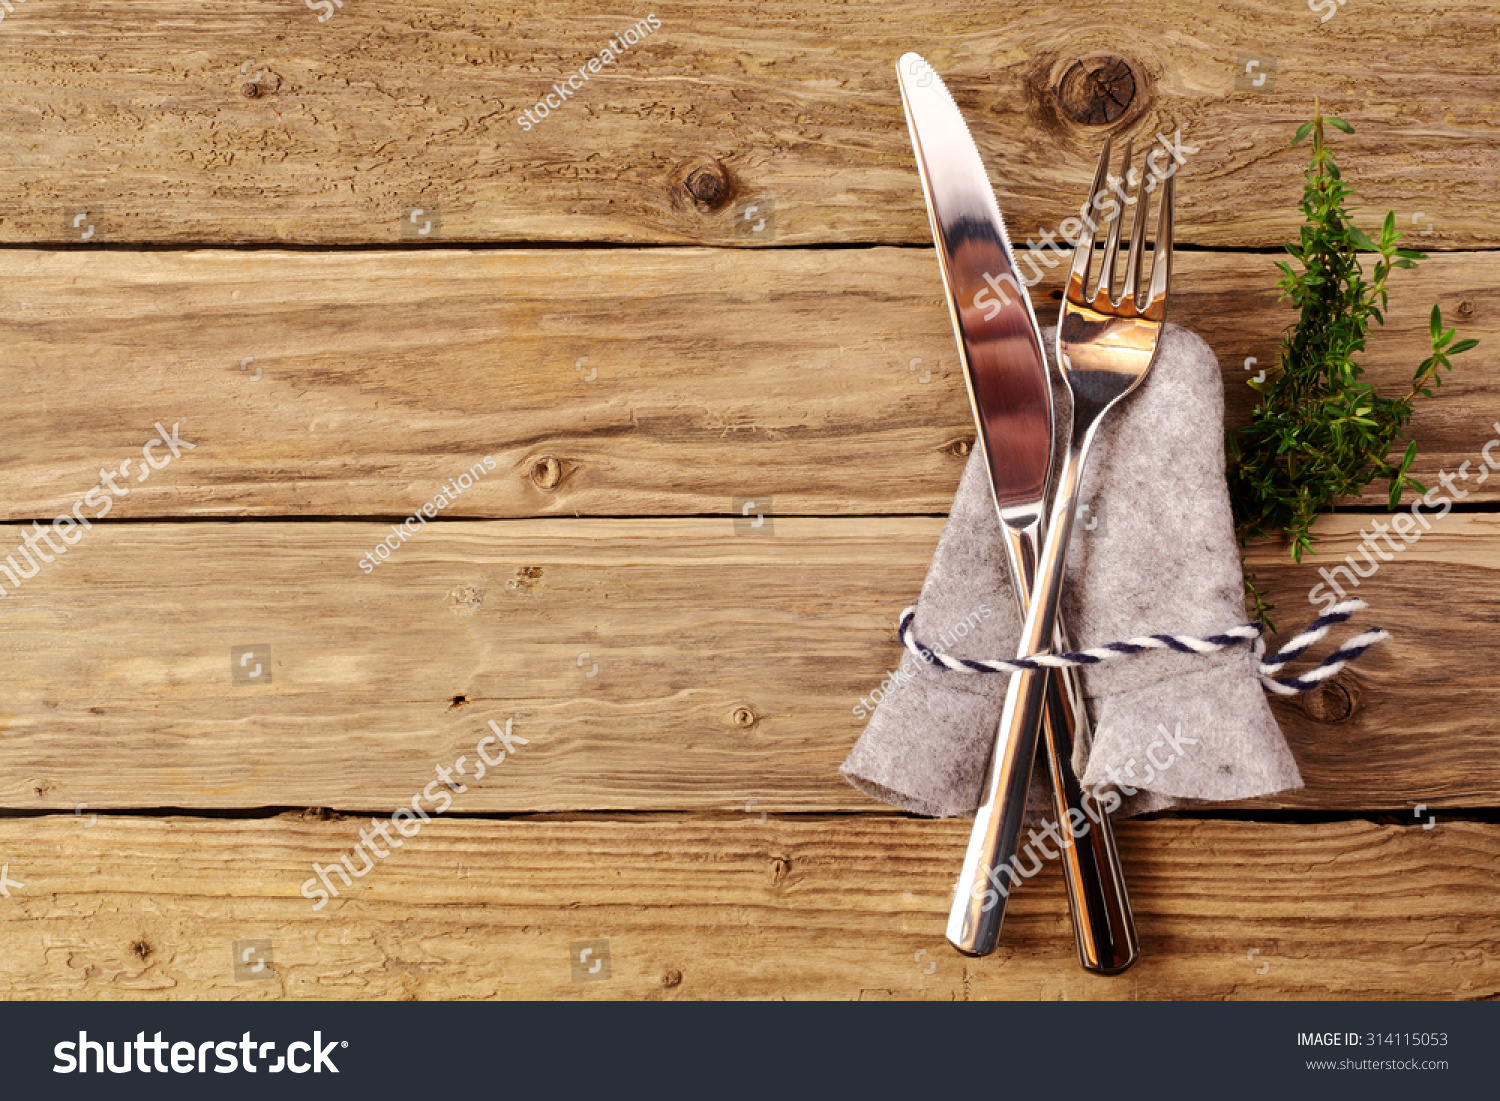 Bavarian cutlery on wooden table copyspace stock photo for Alpine cuisine silverware